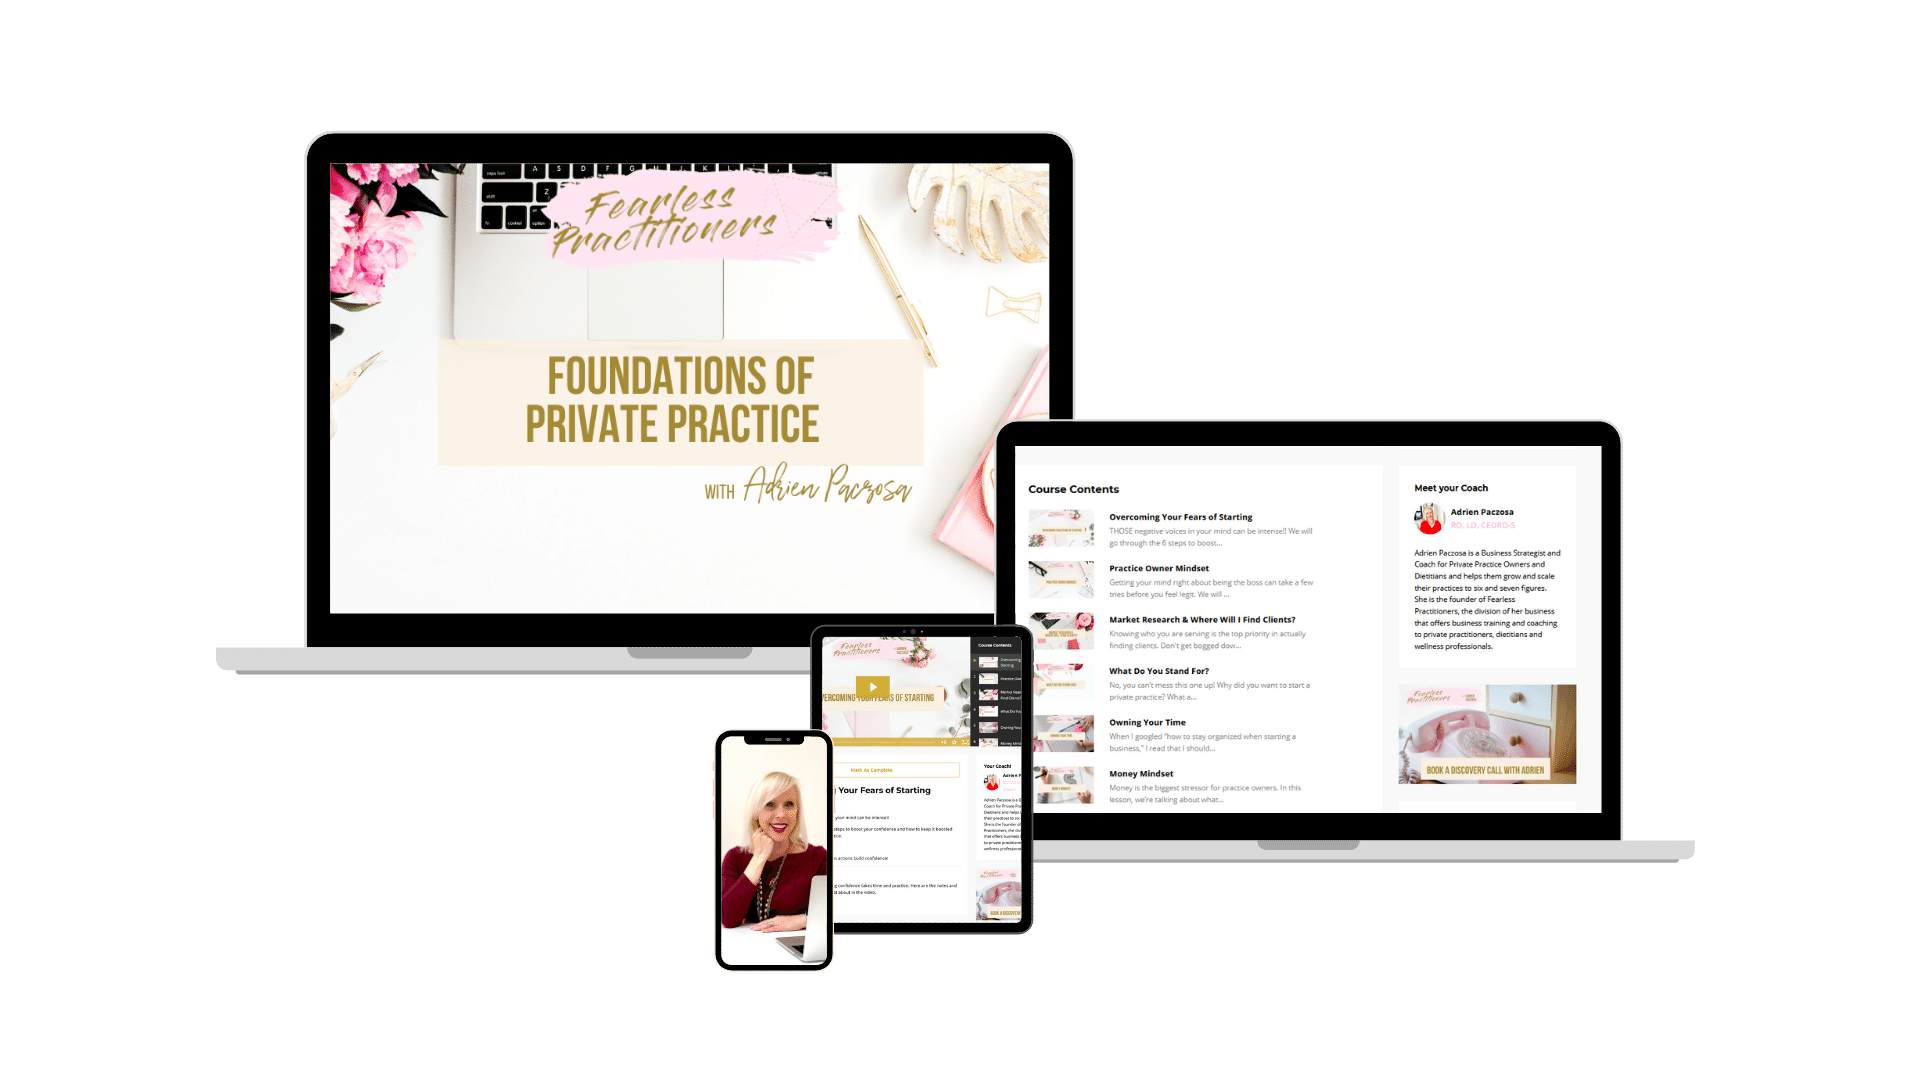 Foundations of Private Practice